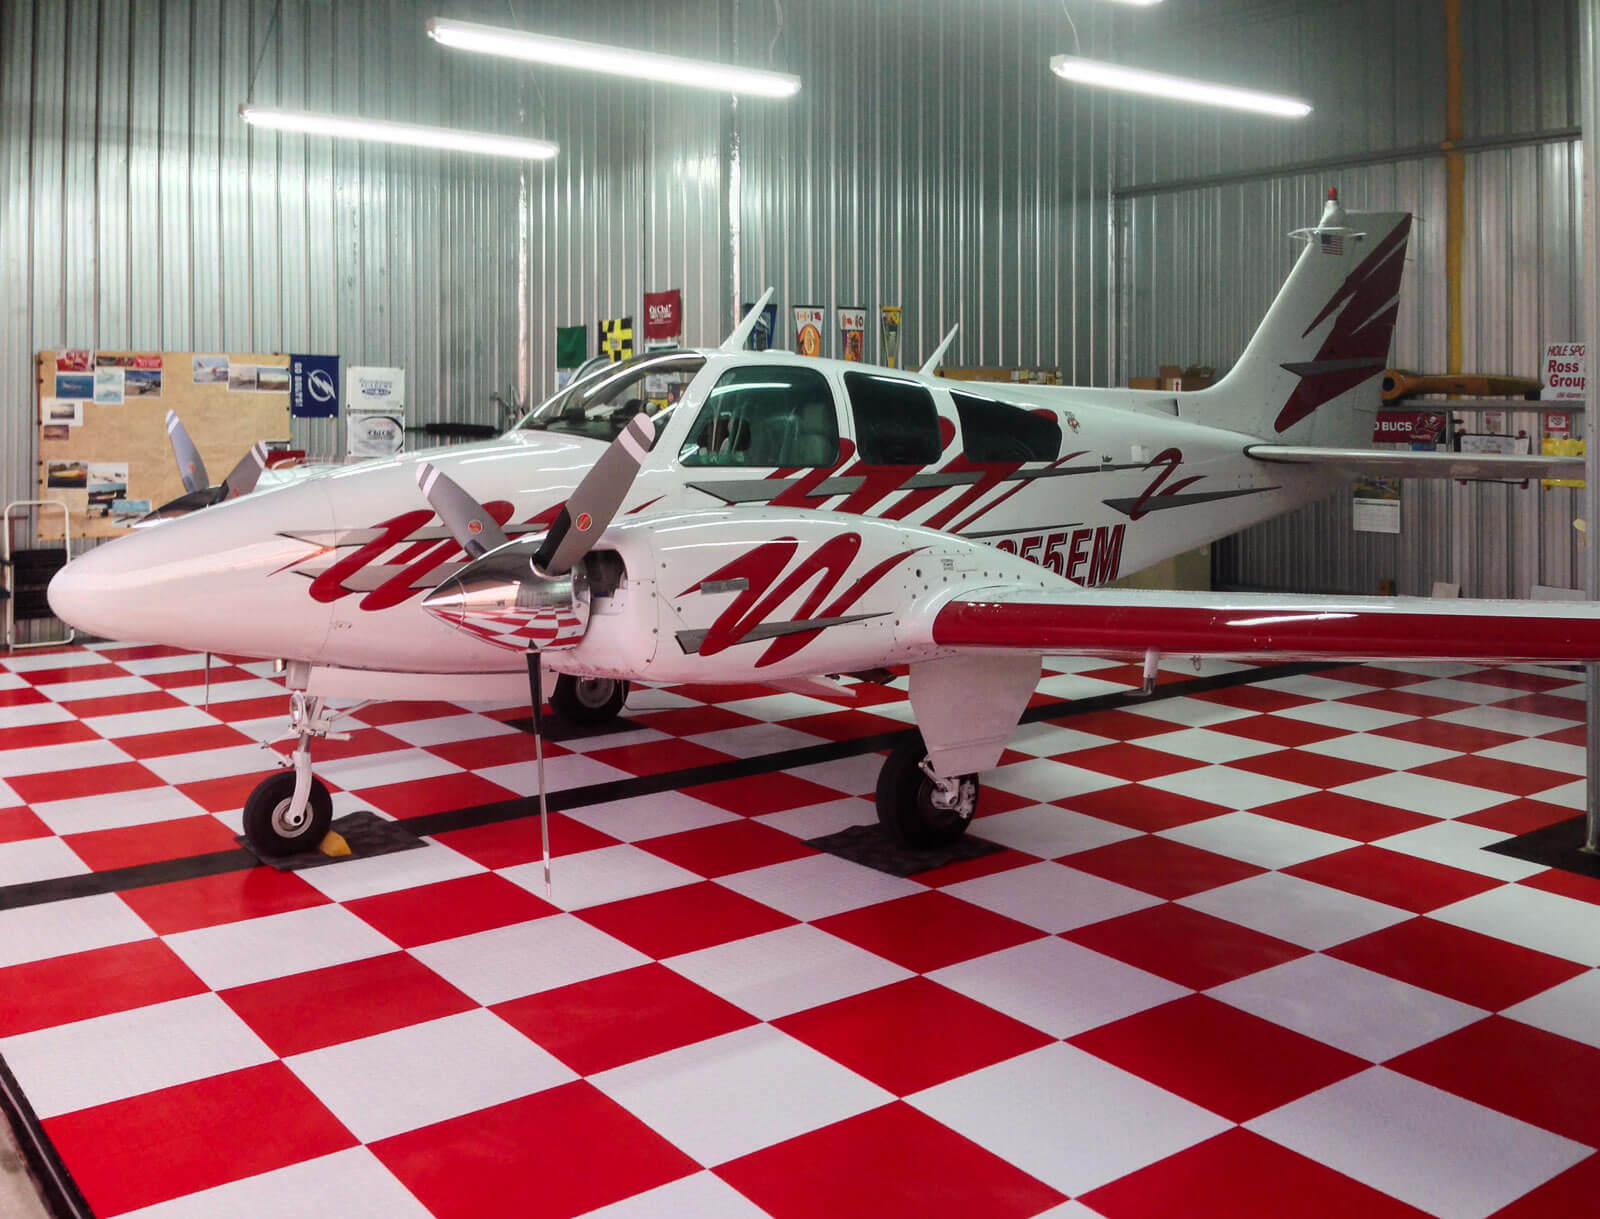 Red and white checkered RaceDeck Diamond flooring for a red and white plane.